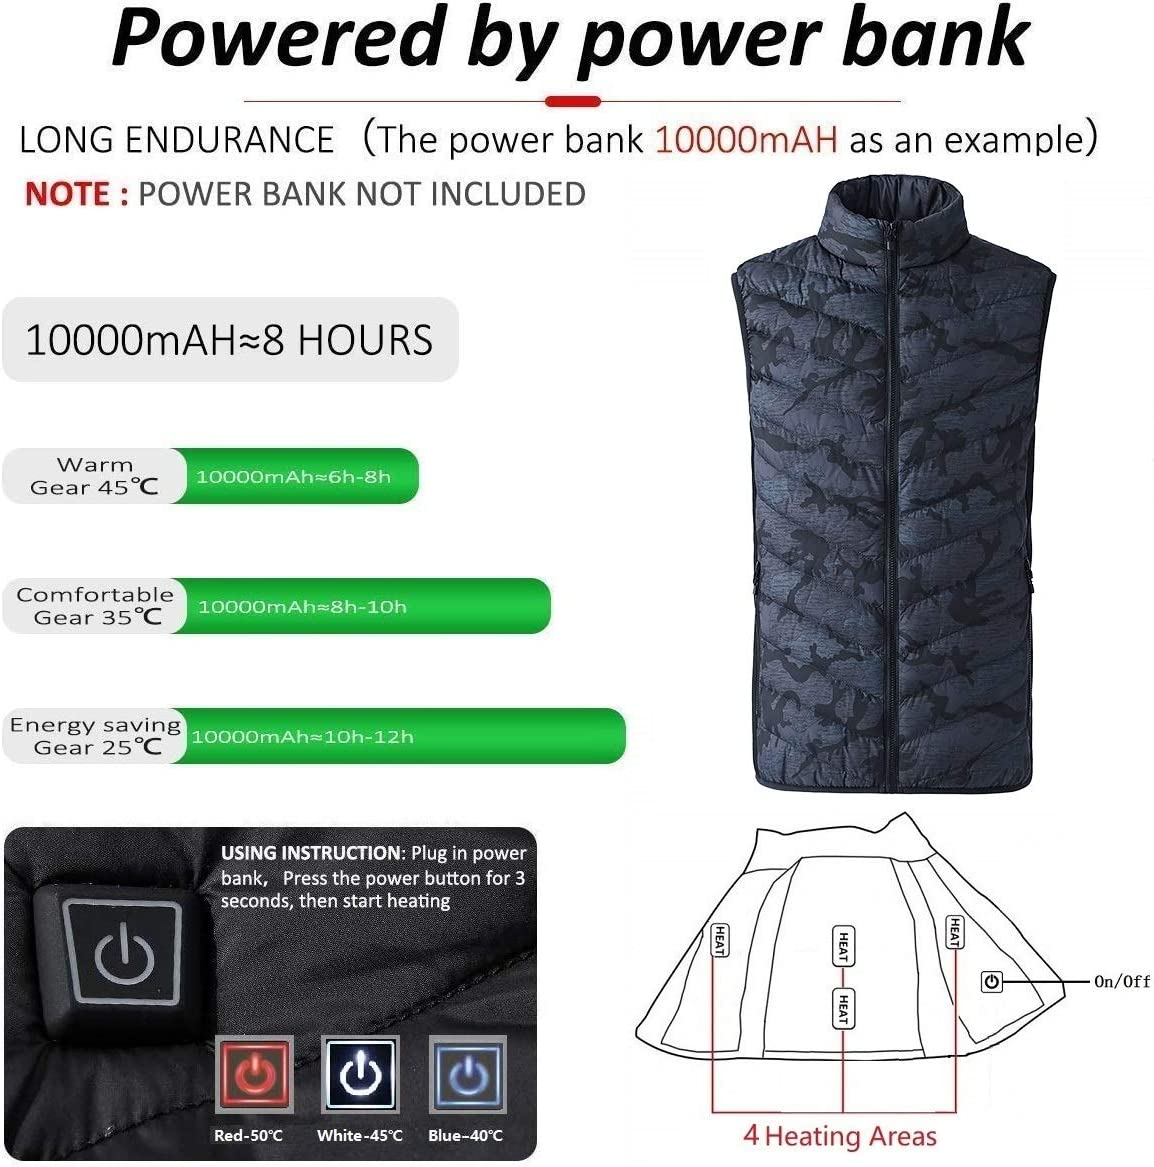 Freefa Electric Heated Vest USB Lightweight Size Right 5 Heating Zones Water Wind Resistant with Touchscreen Glove